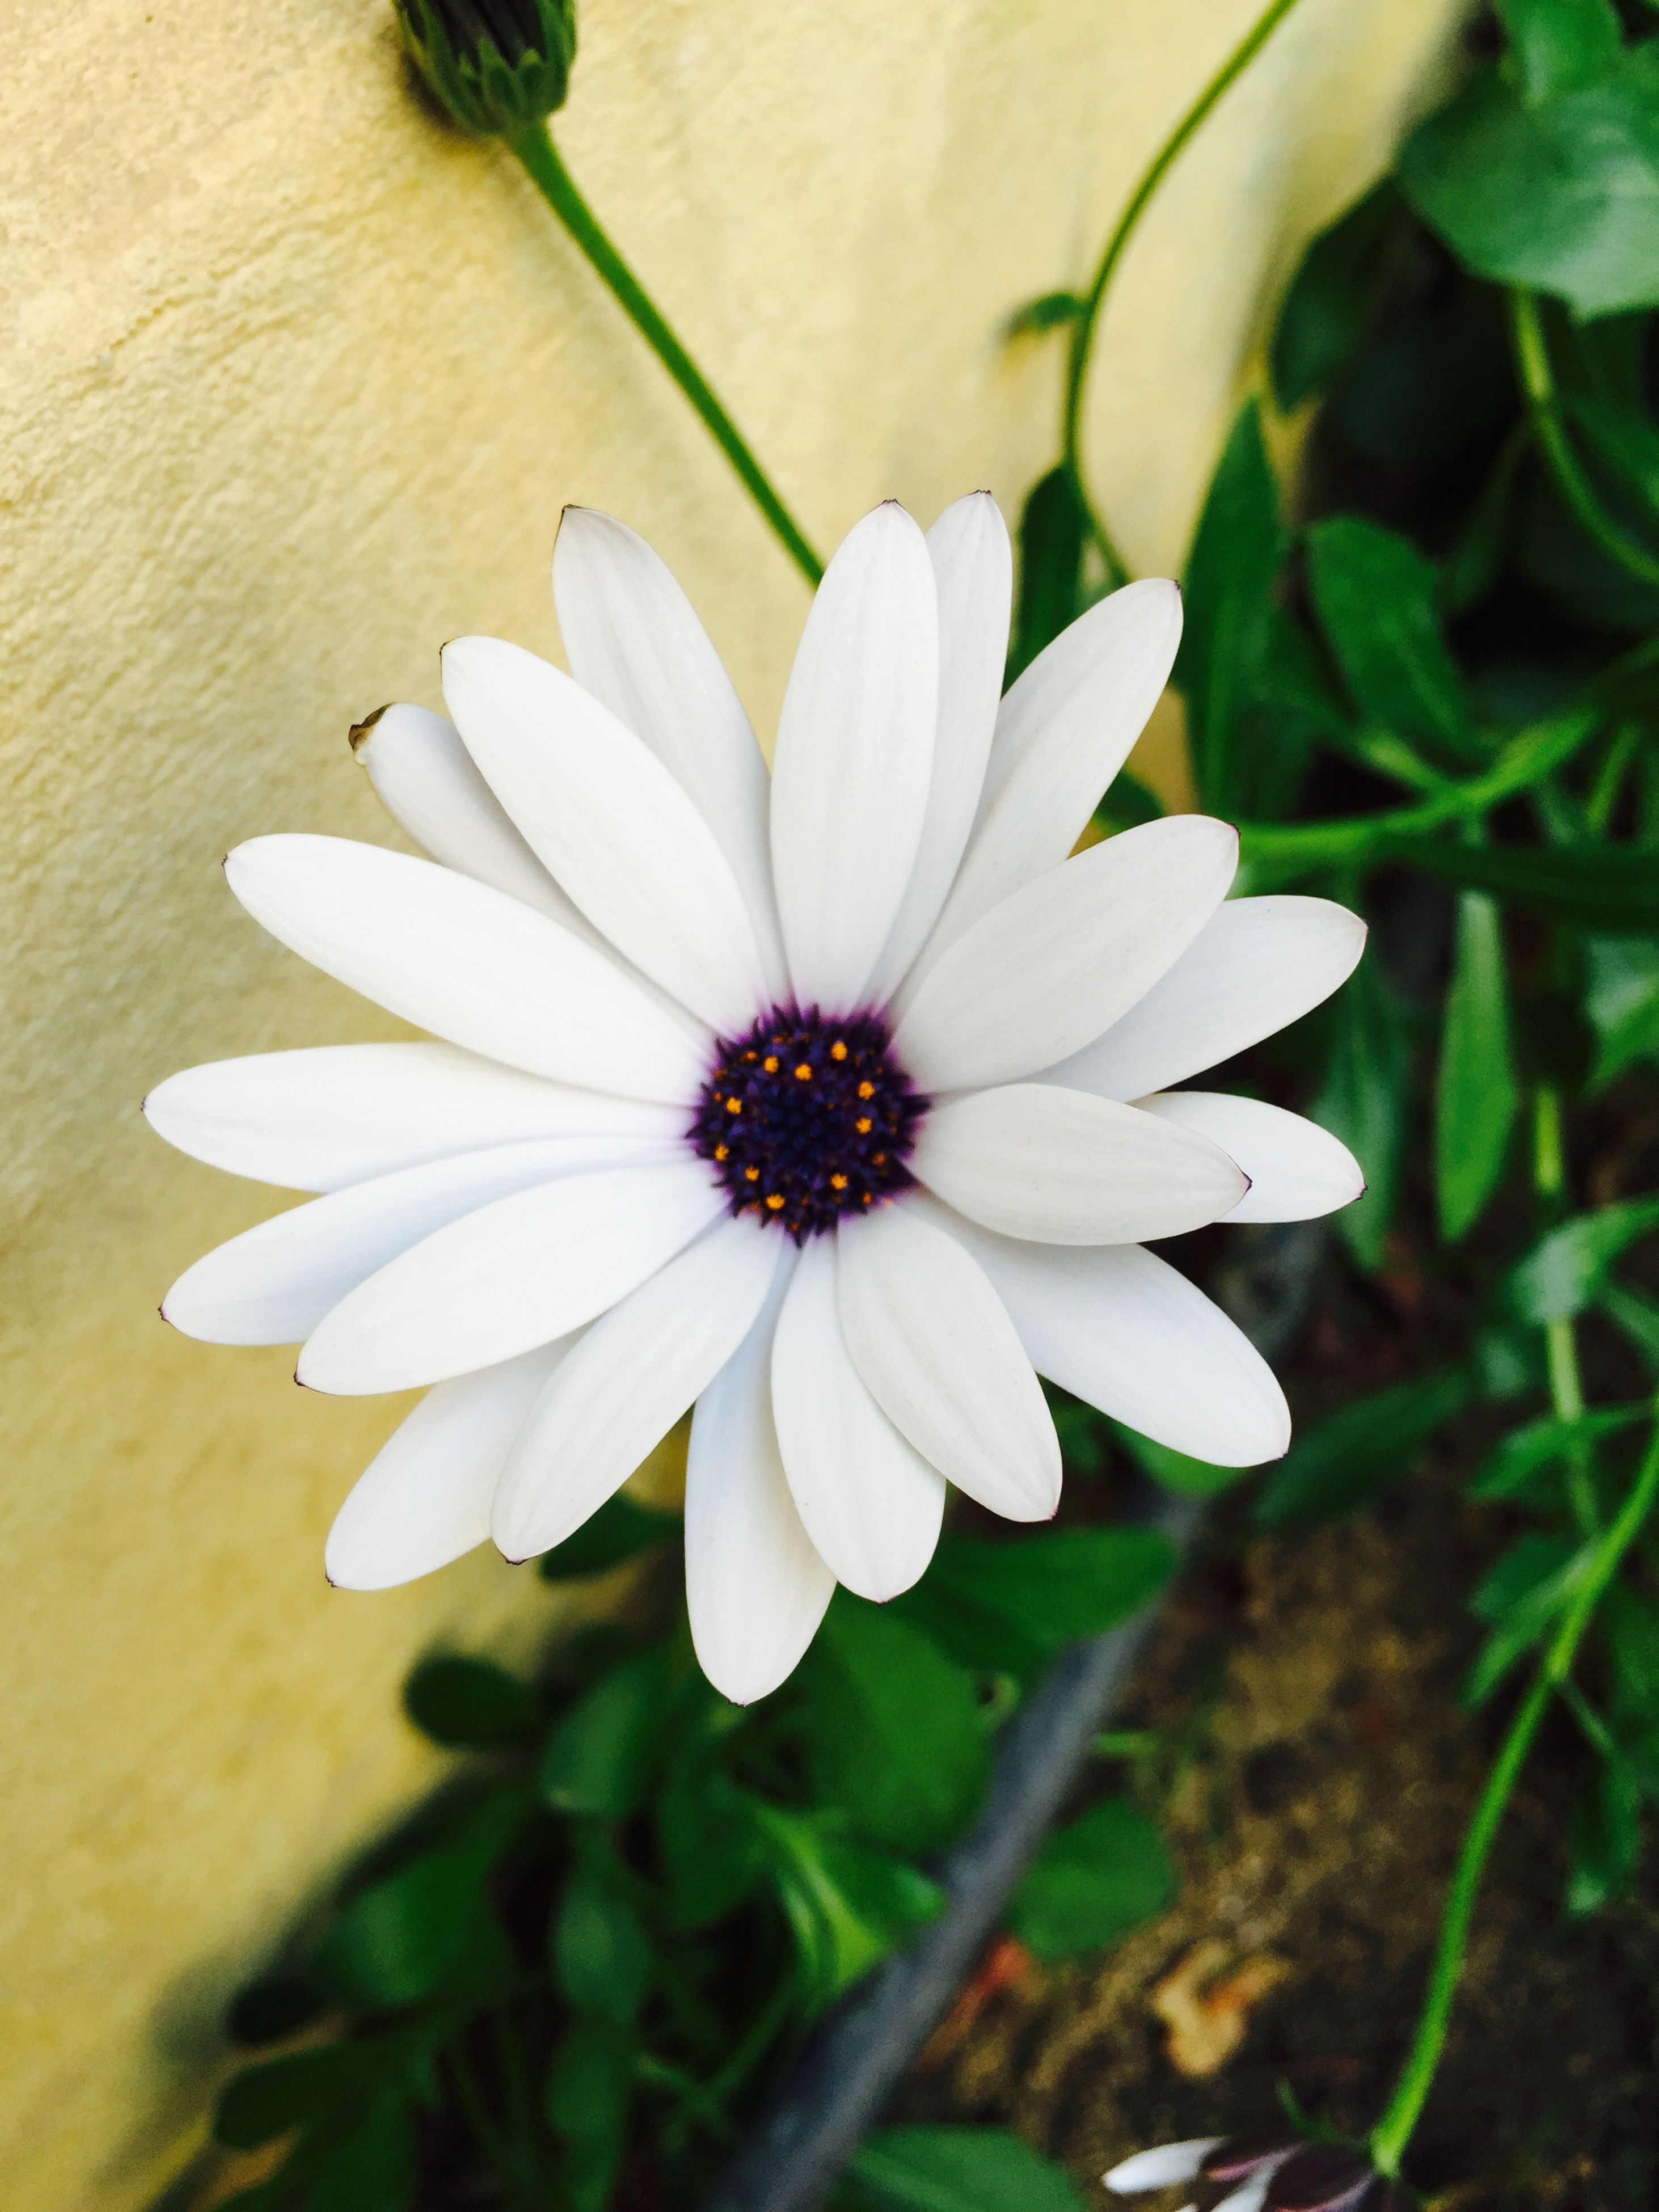 flower, petal, freshness, flower head, fragility, growth, single flower, beauty in nature, pollen, close-up, blooming, nature, white color, plant, high angle view, in bloom, focus on foreground, daisy, stamen, blossom